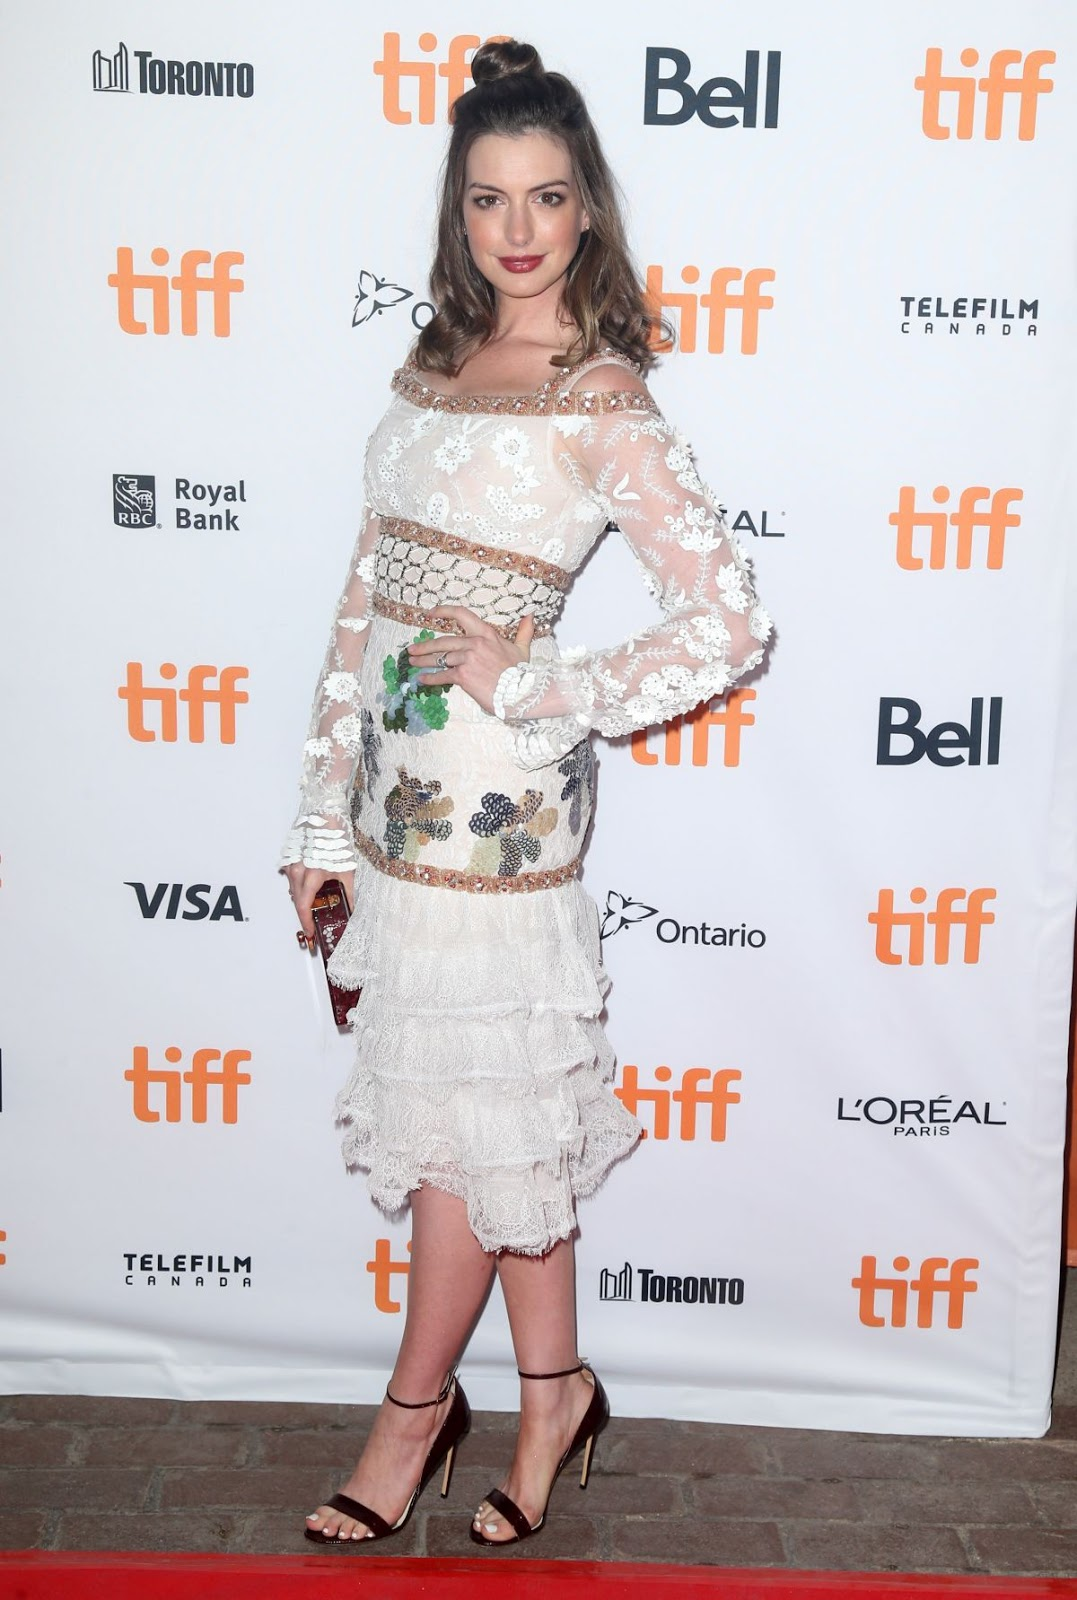 TIFF 2016 HQ Photos - Anne Hathaway At Colossal Premiere At 2016 Toronto International Film Festival